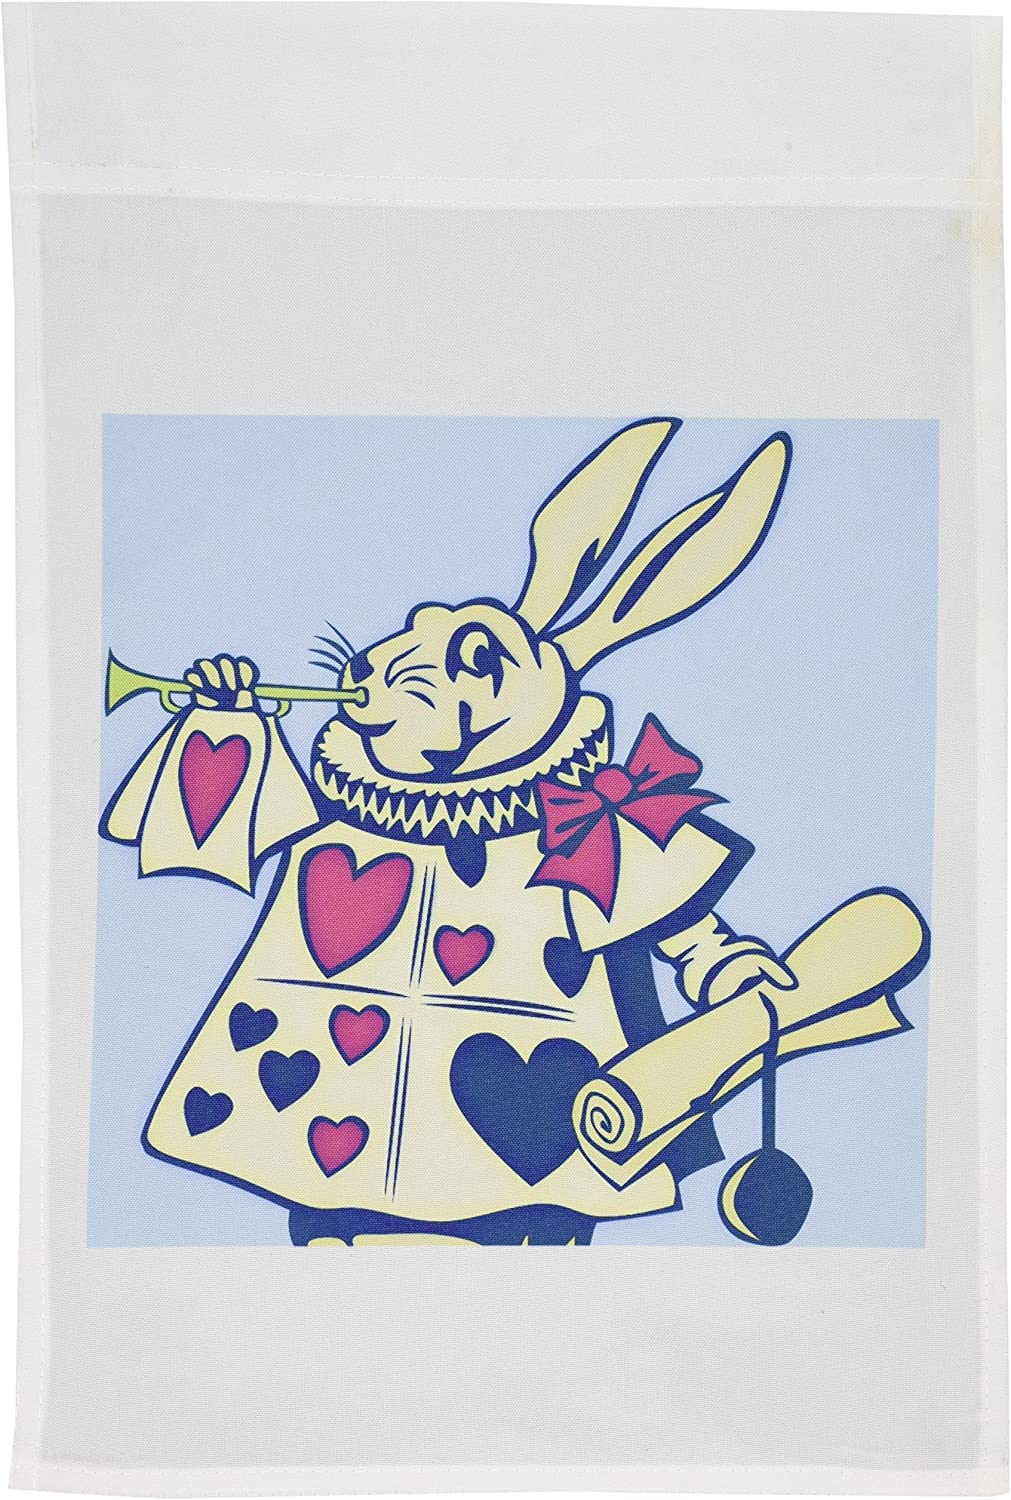 3dRose fl_55724_1 Magical Rabbit Fun and Whimsical Art Alice in Wonderland Garden Flag, 12 by 18-Inch